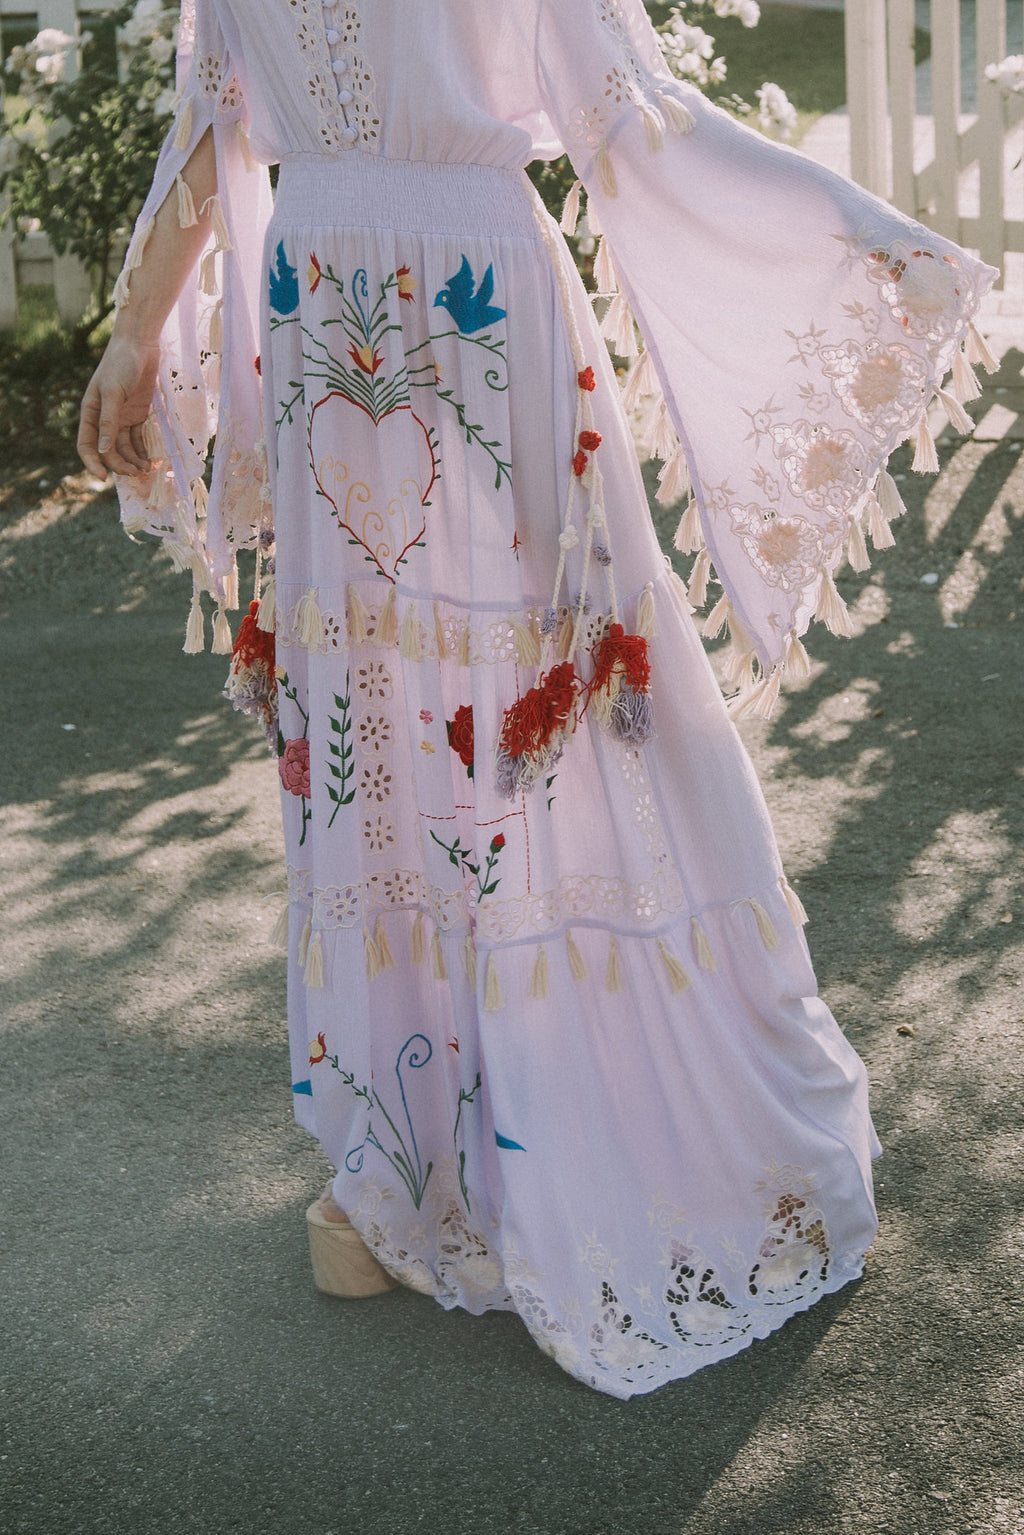 LITTLE BEAR' - HAND EMBROIDERED MAXI DRESS